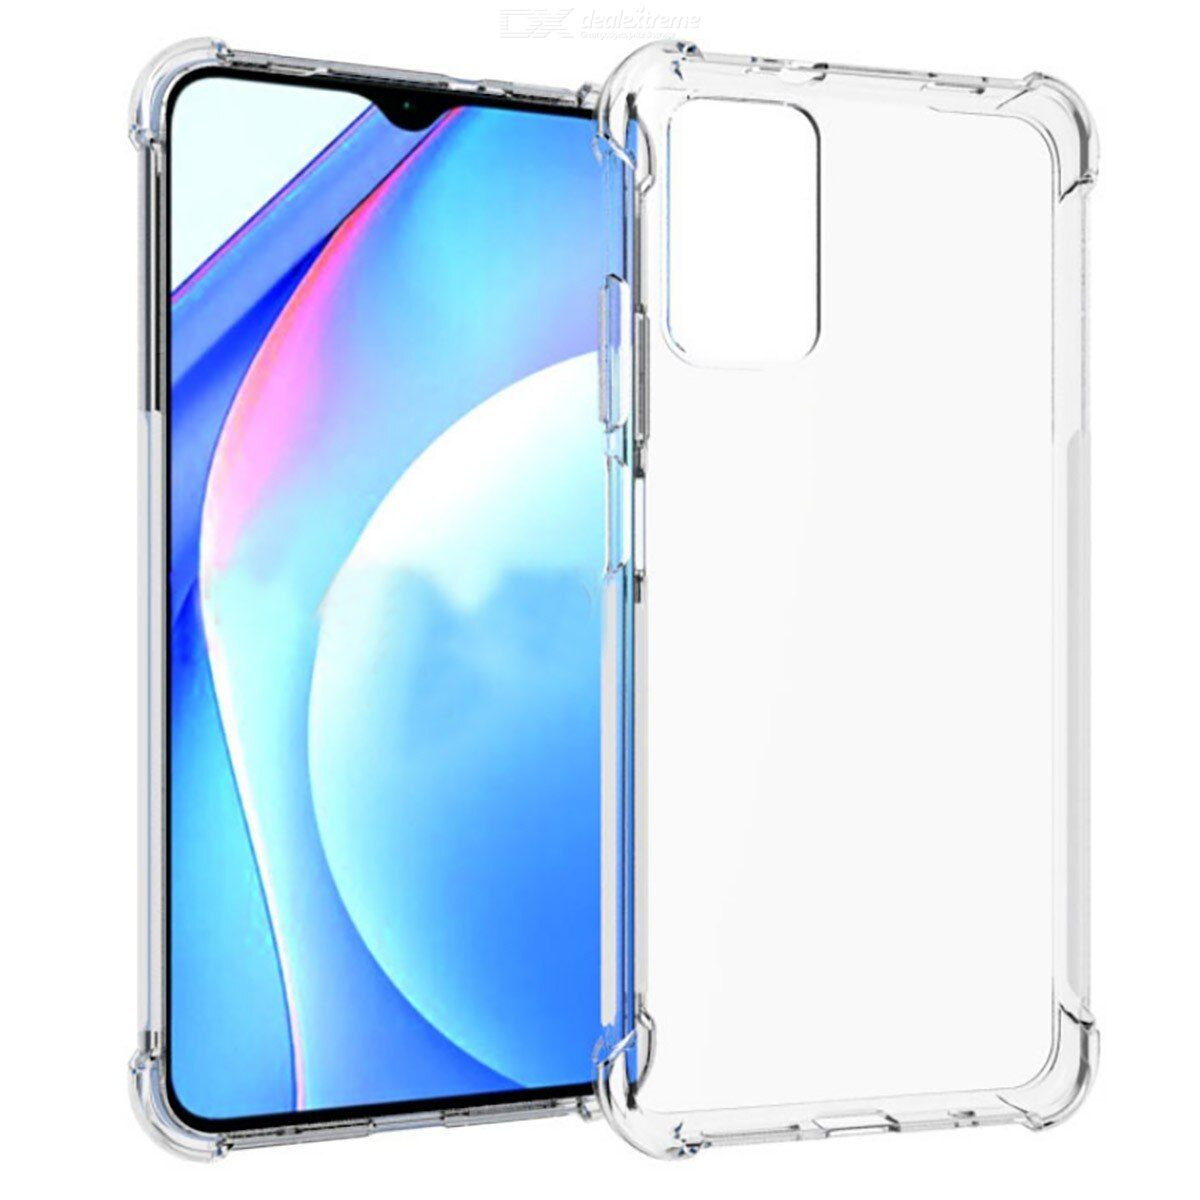 ASLING Four-corner Airbag Soft Phone Case Protective Back Cover for Xiaomi Redmi 9T